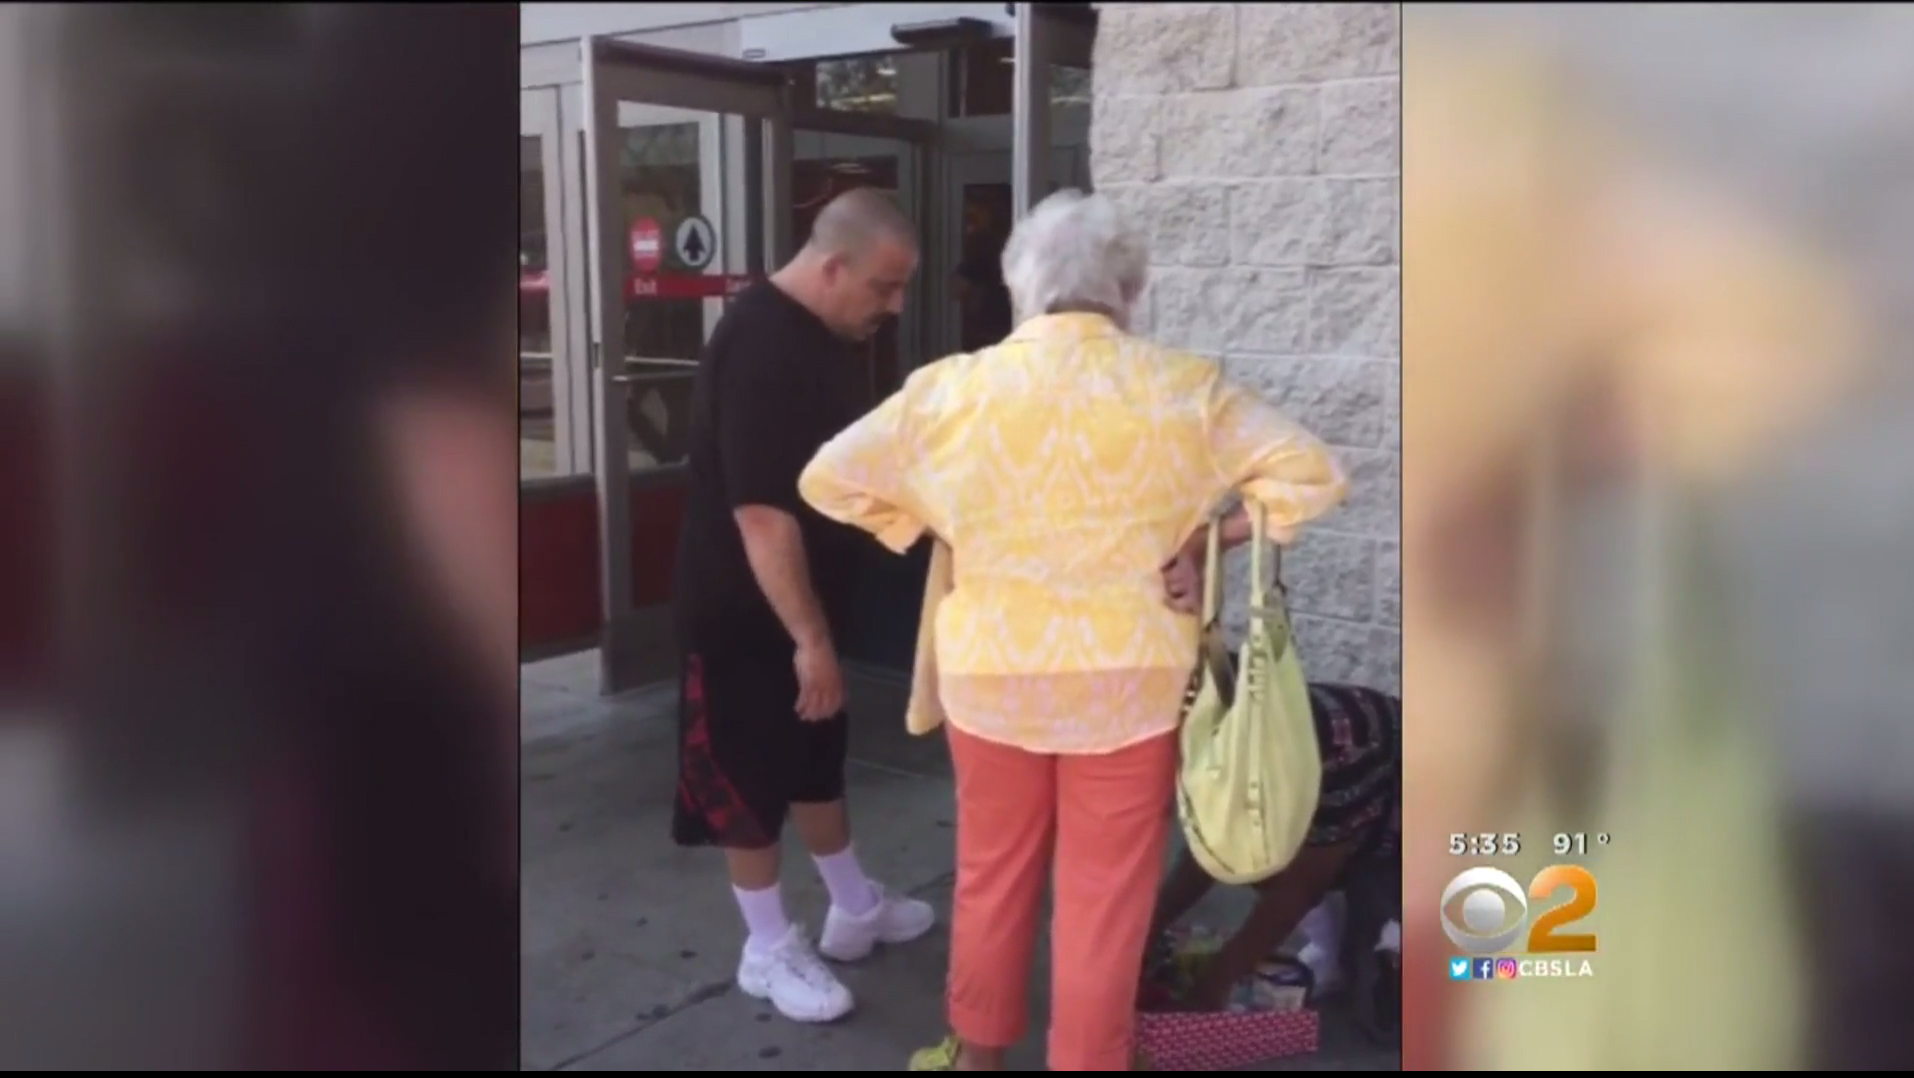 Good Samaritan buys $80 worth of candy from kid being harassed by old woman